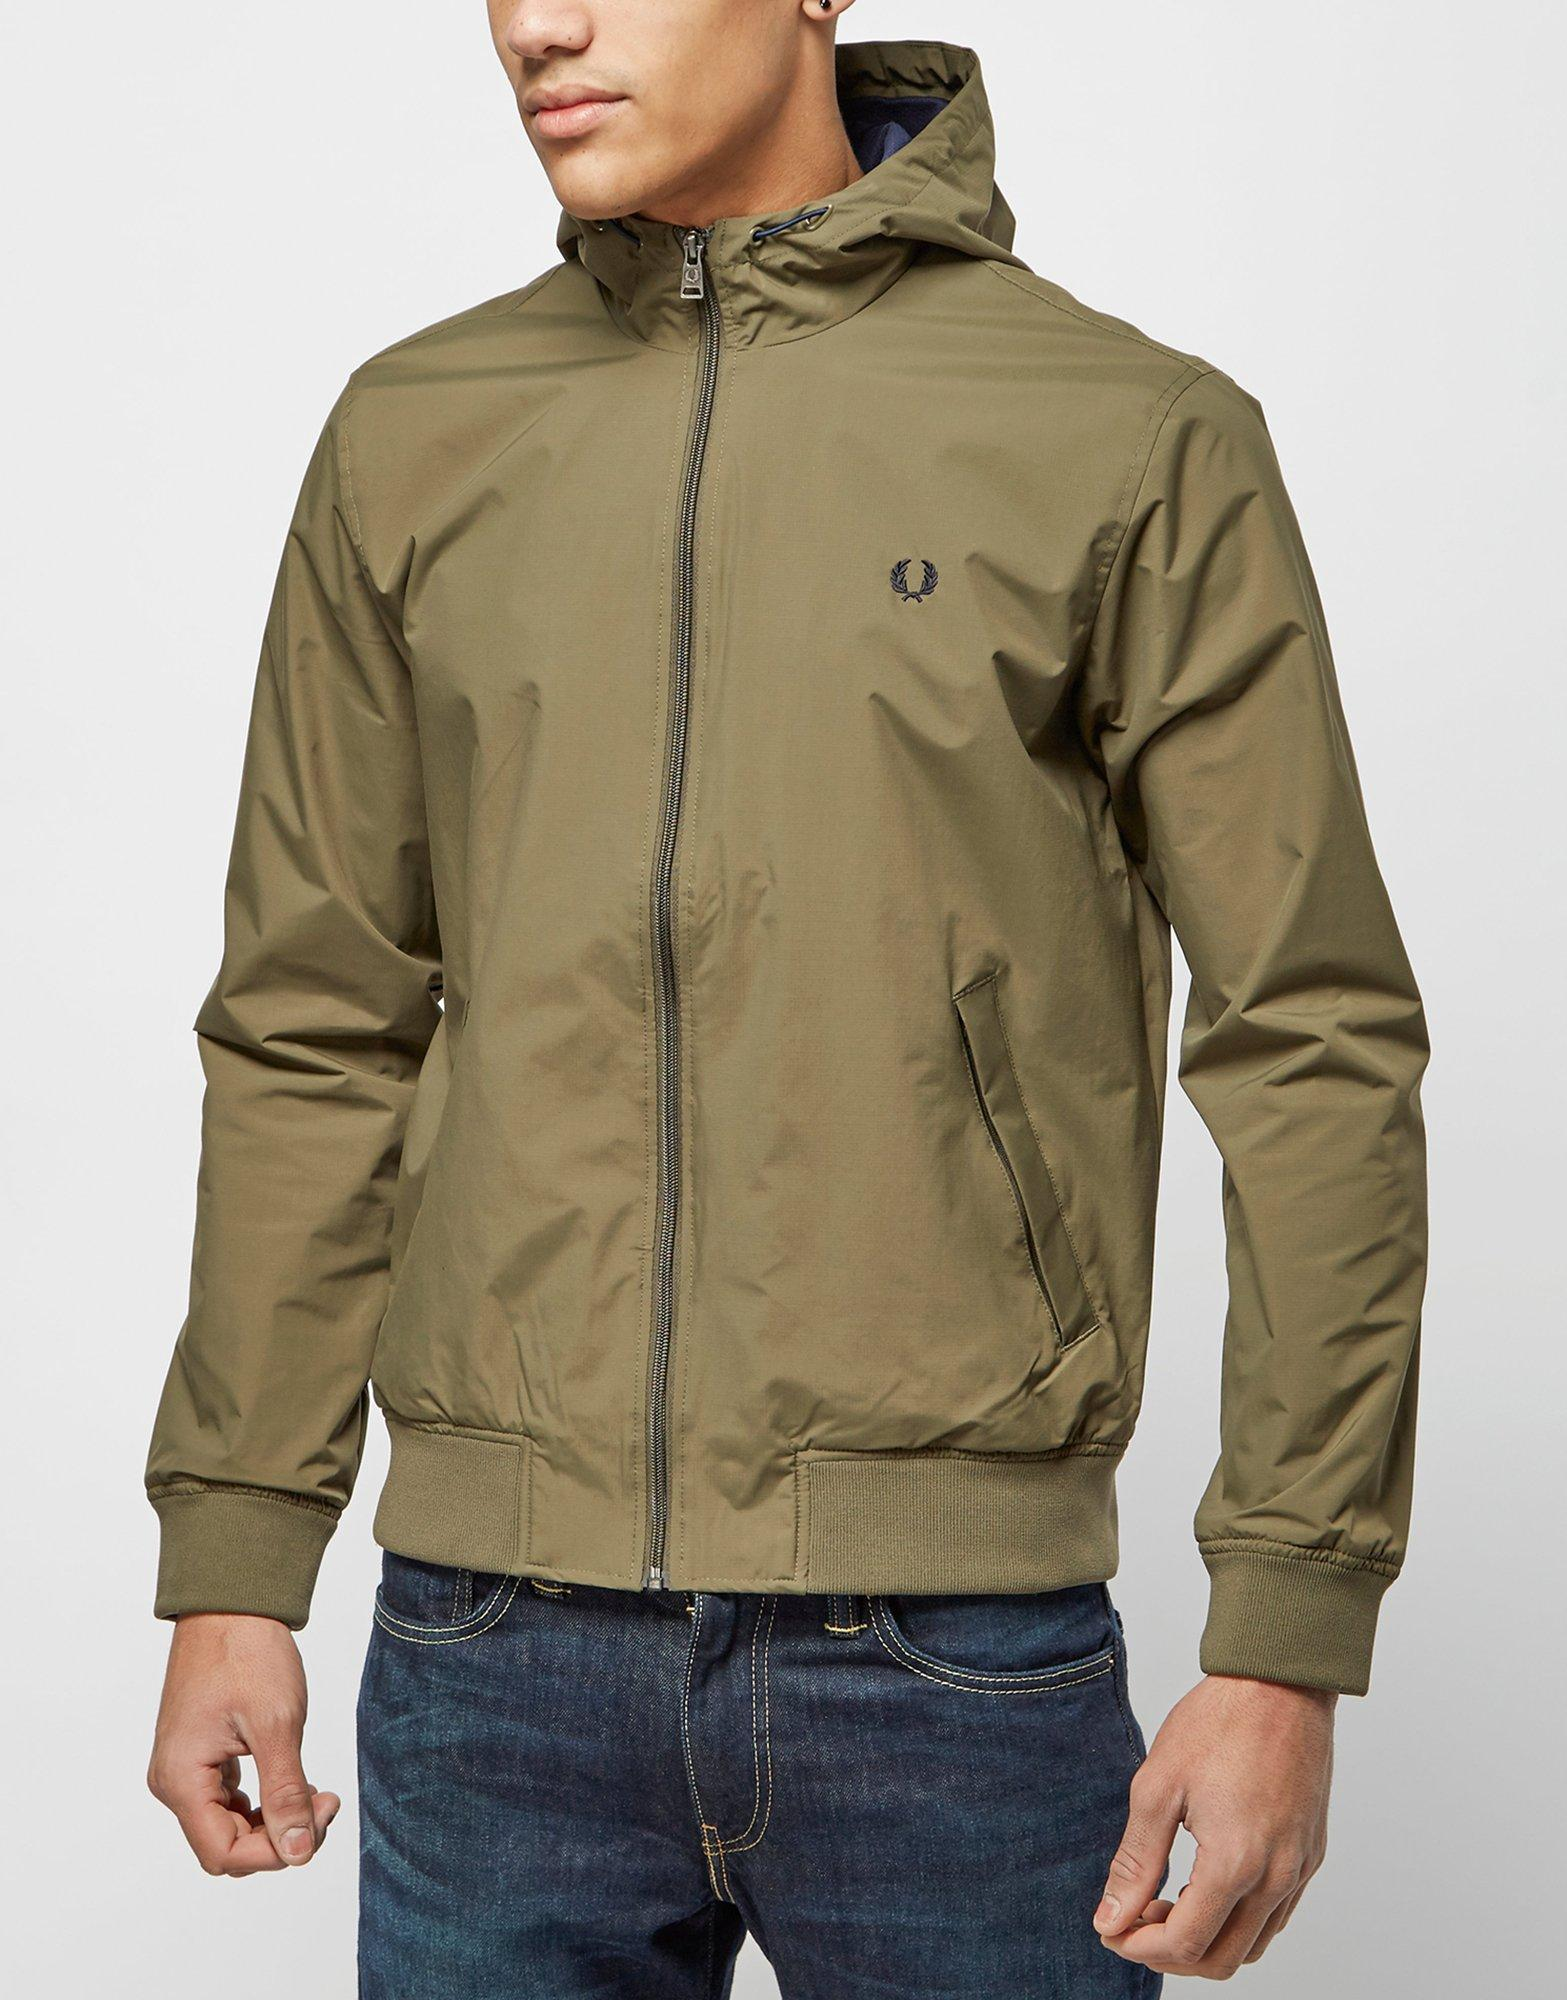 Fred perry jacke sale